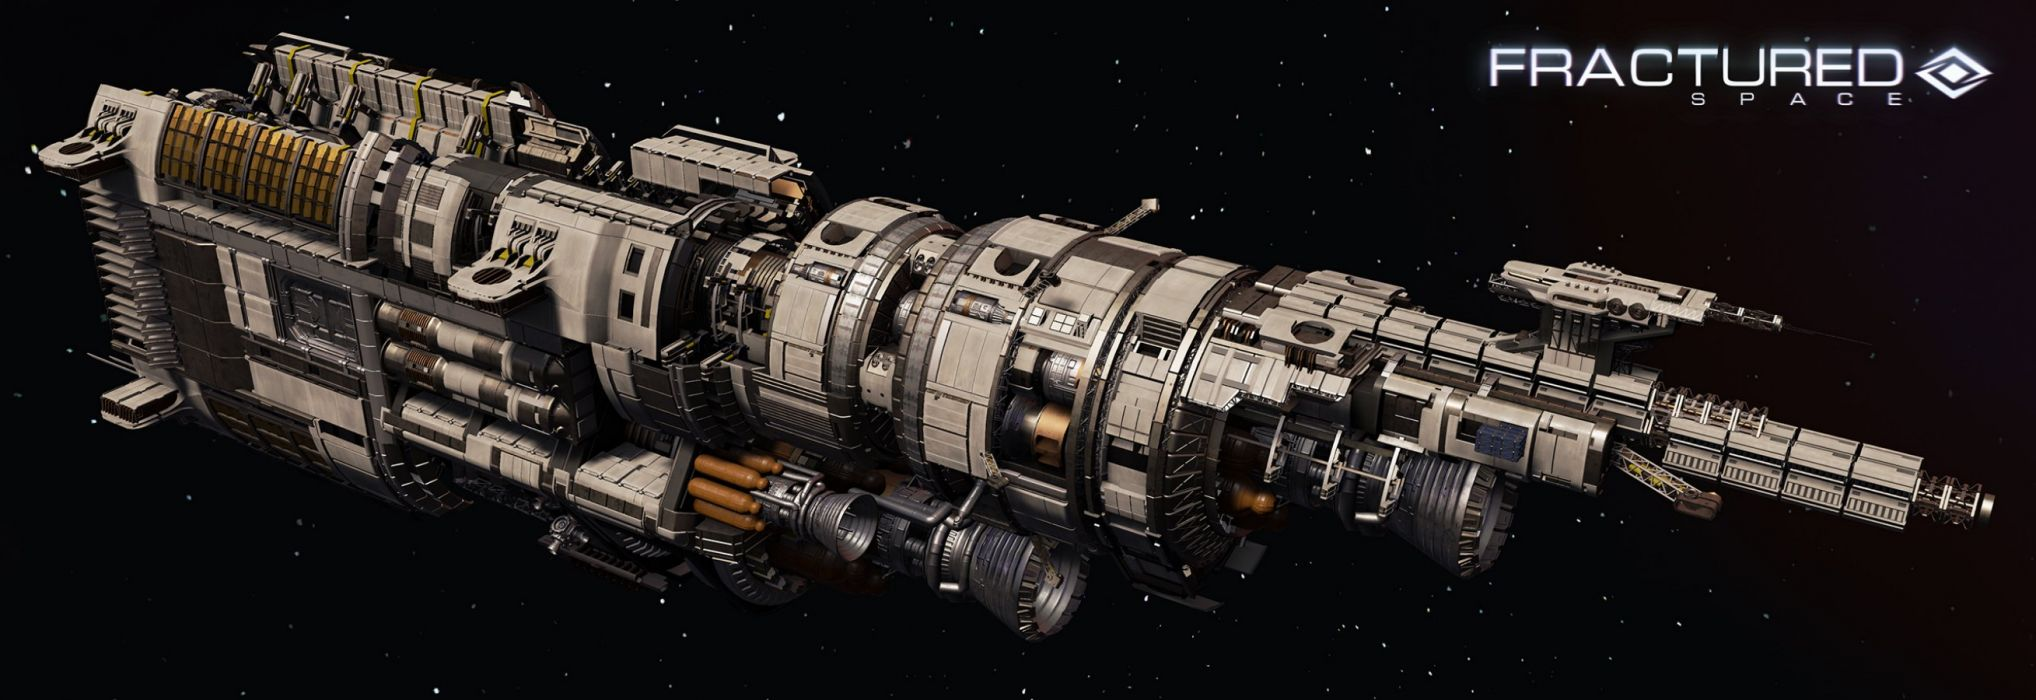 FRACTURED SPACE space combat action fighting futuristic 1fspace spaceship sci-fi shooter mmo tactical strategy mmo online wallpaper